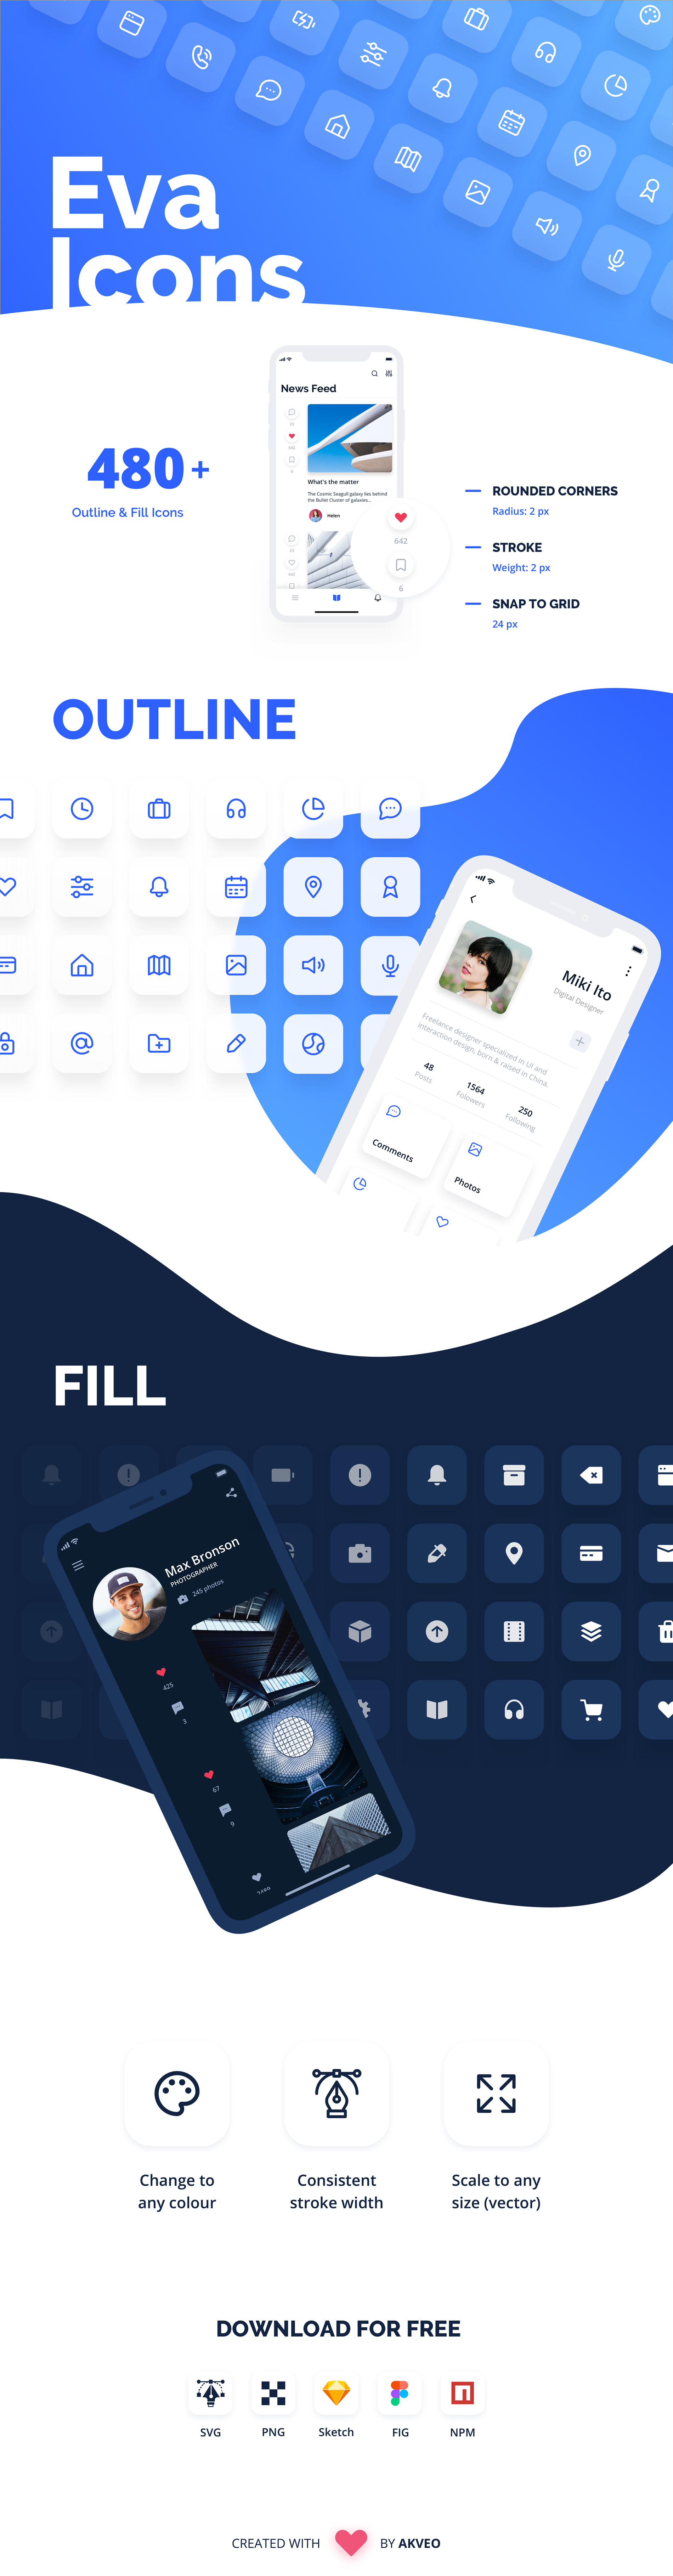 Eva Icons - Eva Icons is a pack of more than 480 beautifully crafted Open Source icons for common actions and items. Download our set on the desktop to use them in your digital products for Web, iOS and Android.